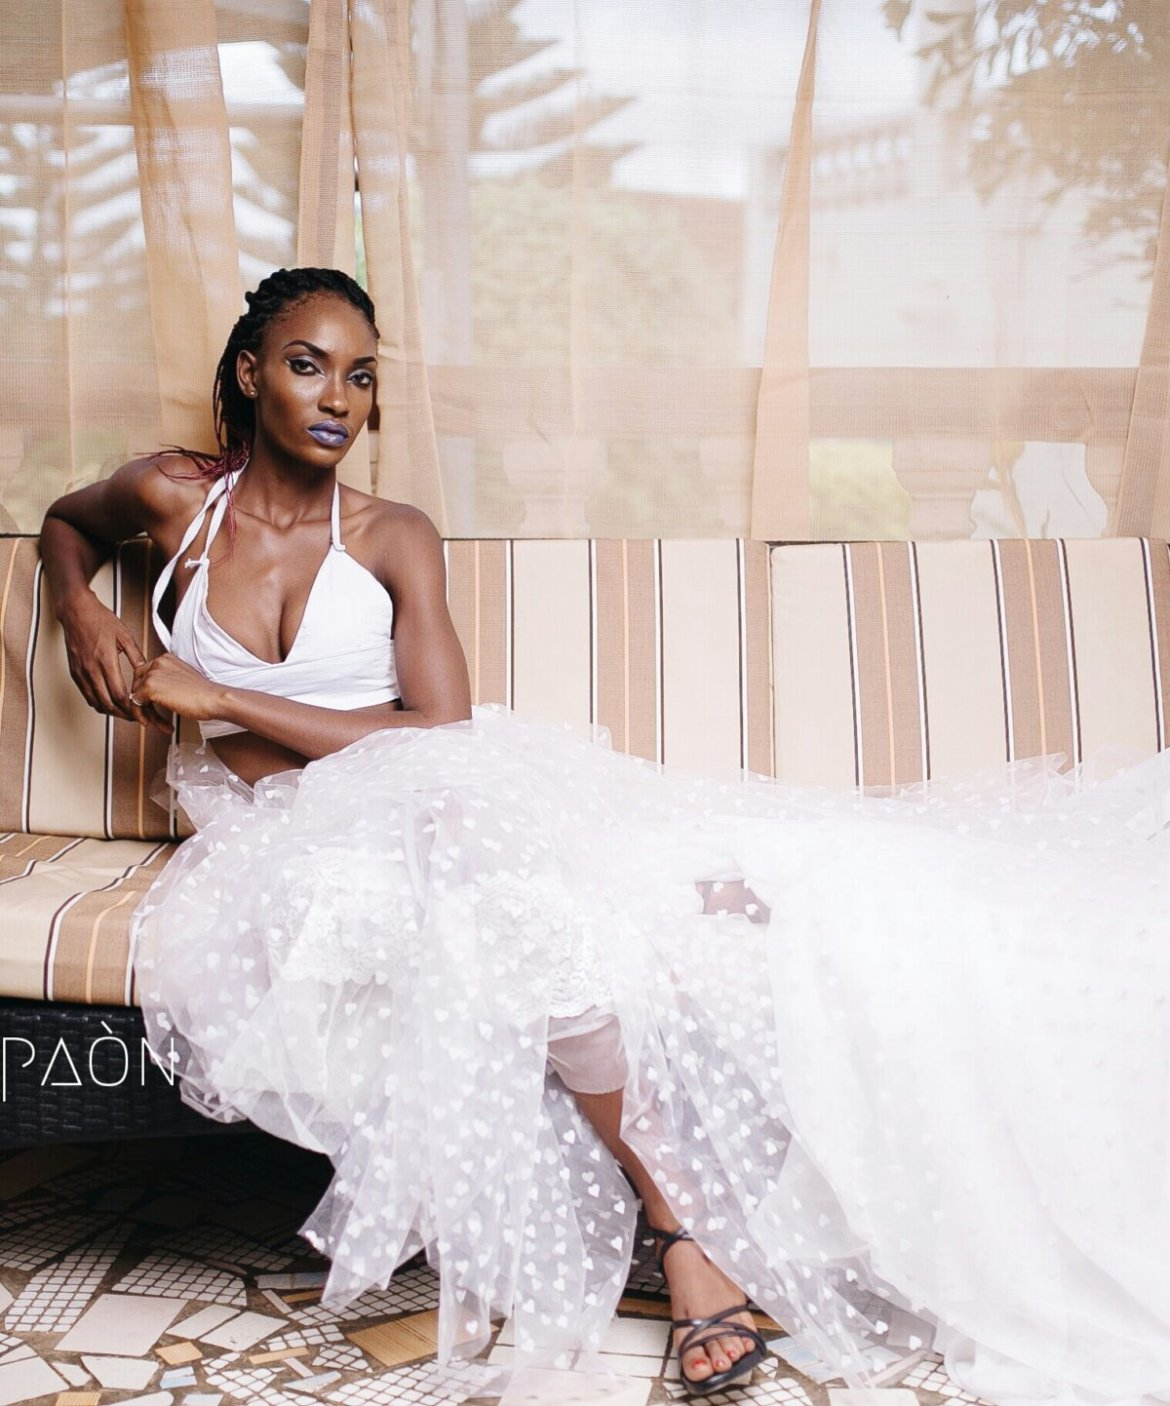 house of paon fashionghana african fashion look book (29)